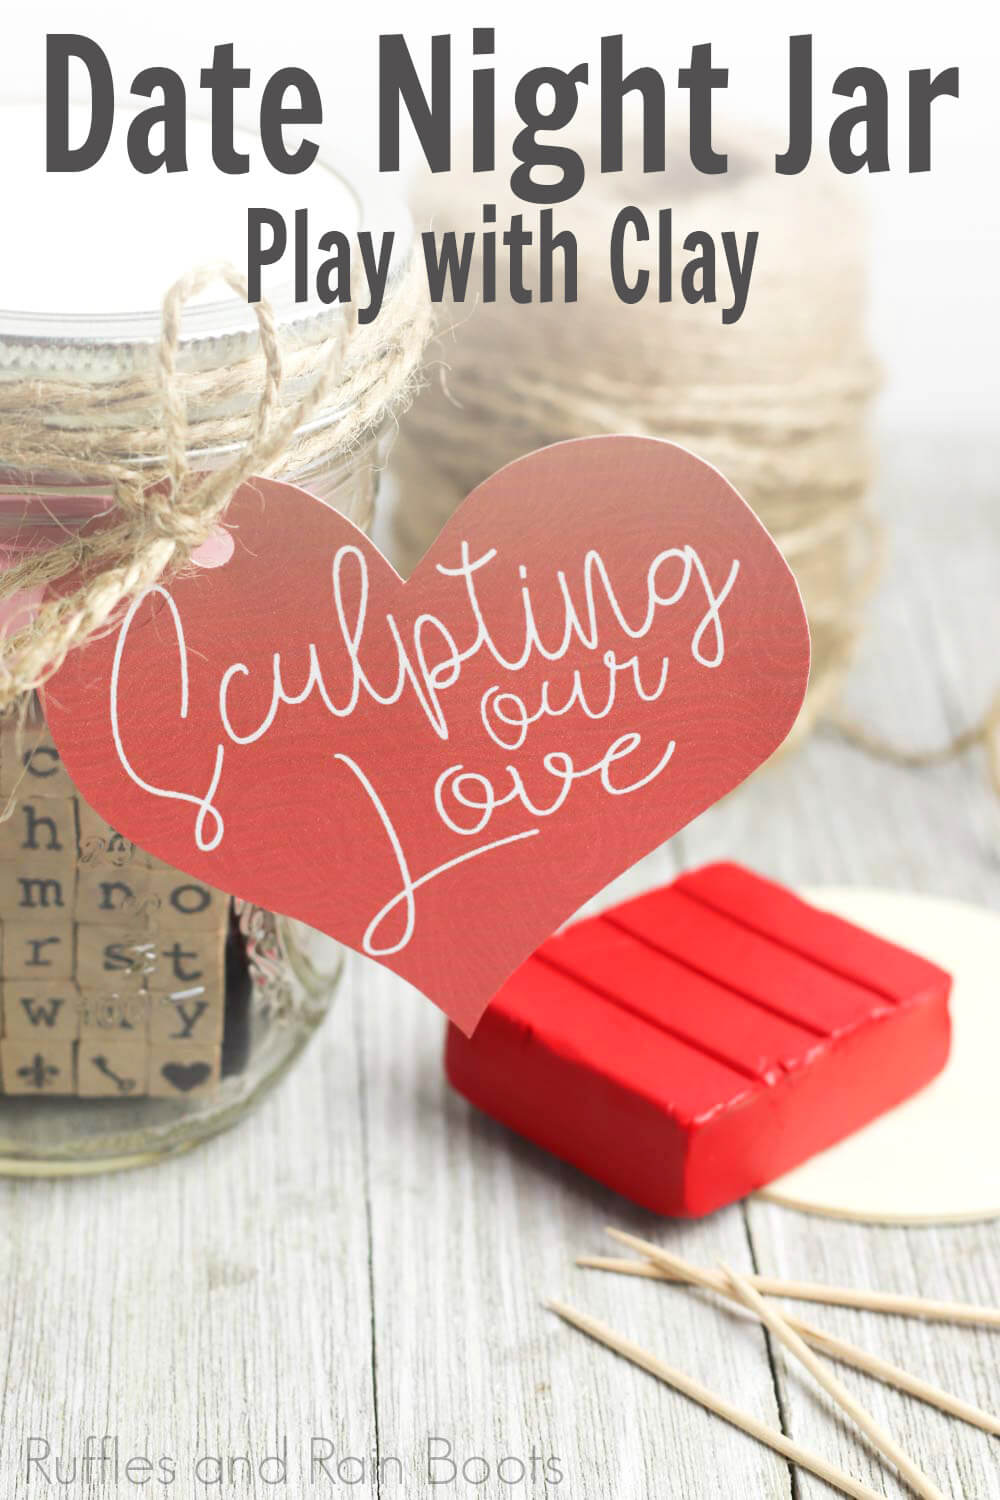 date night ideas clay and sculpting sculpting date night in a jar with red clay and twine on a wooden table with a white background with text which reads date night jar play with clay